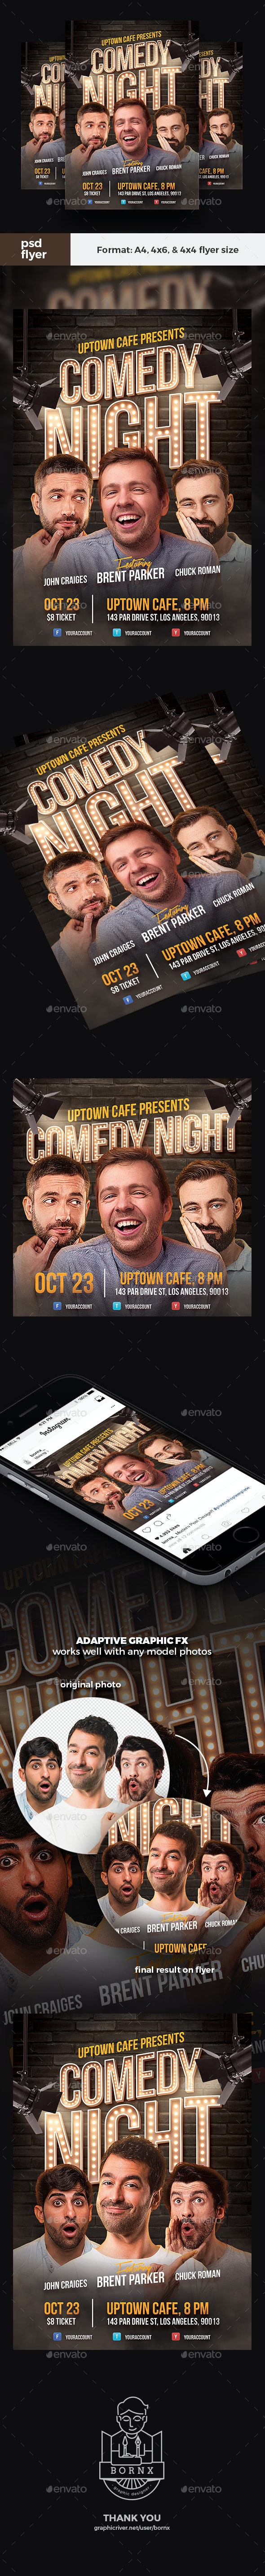 Comedy Night Flyer Template - Events Flyers